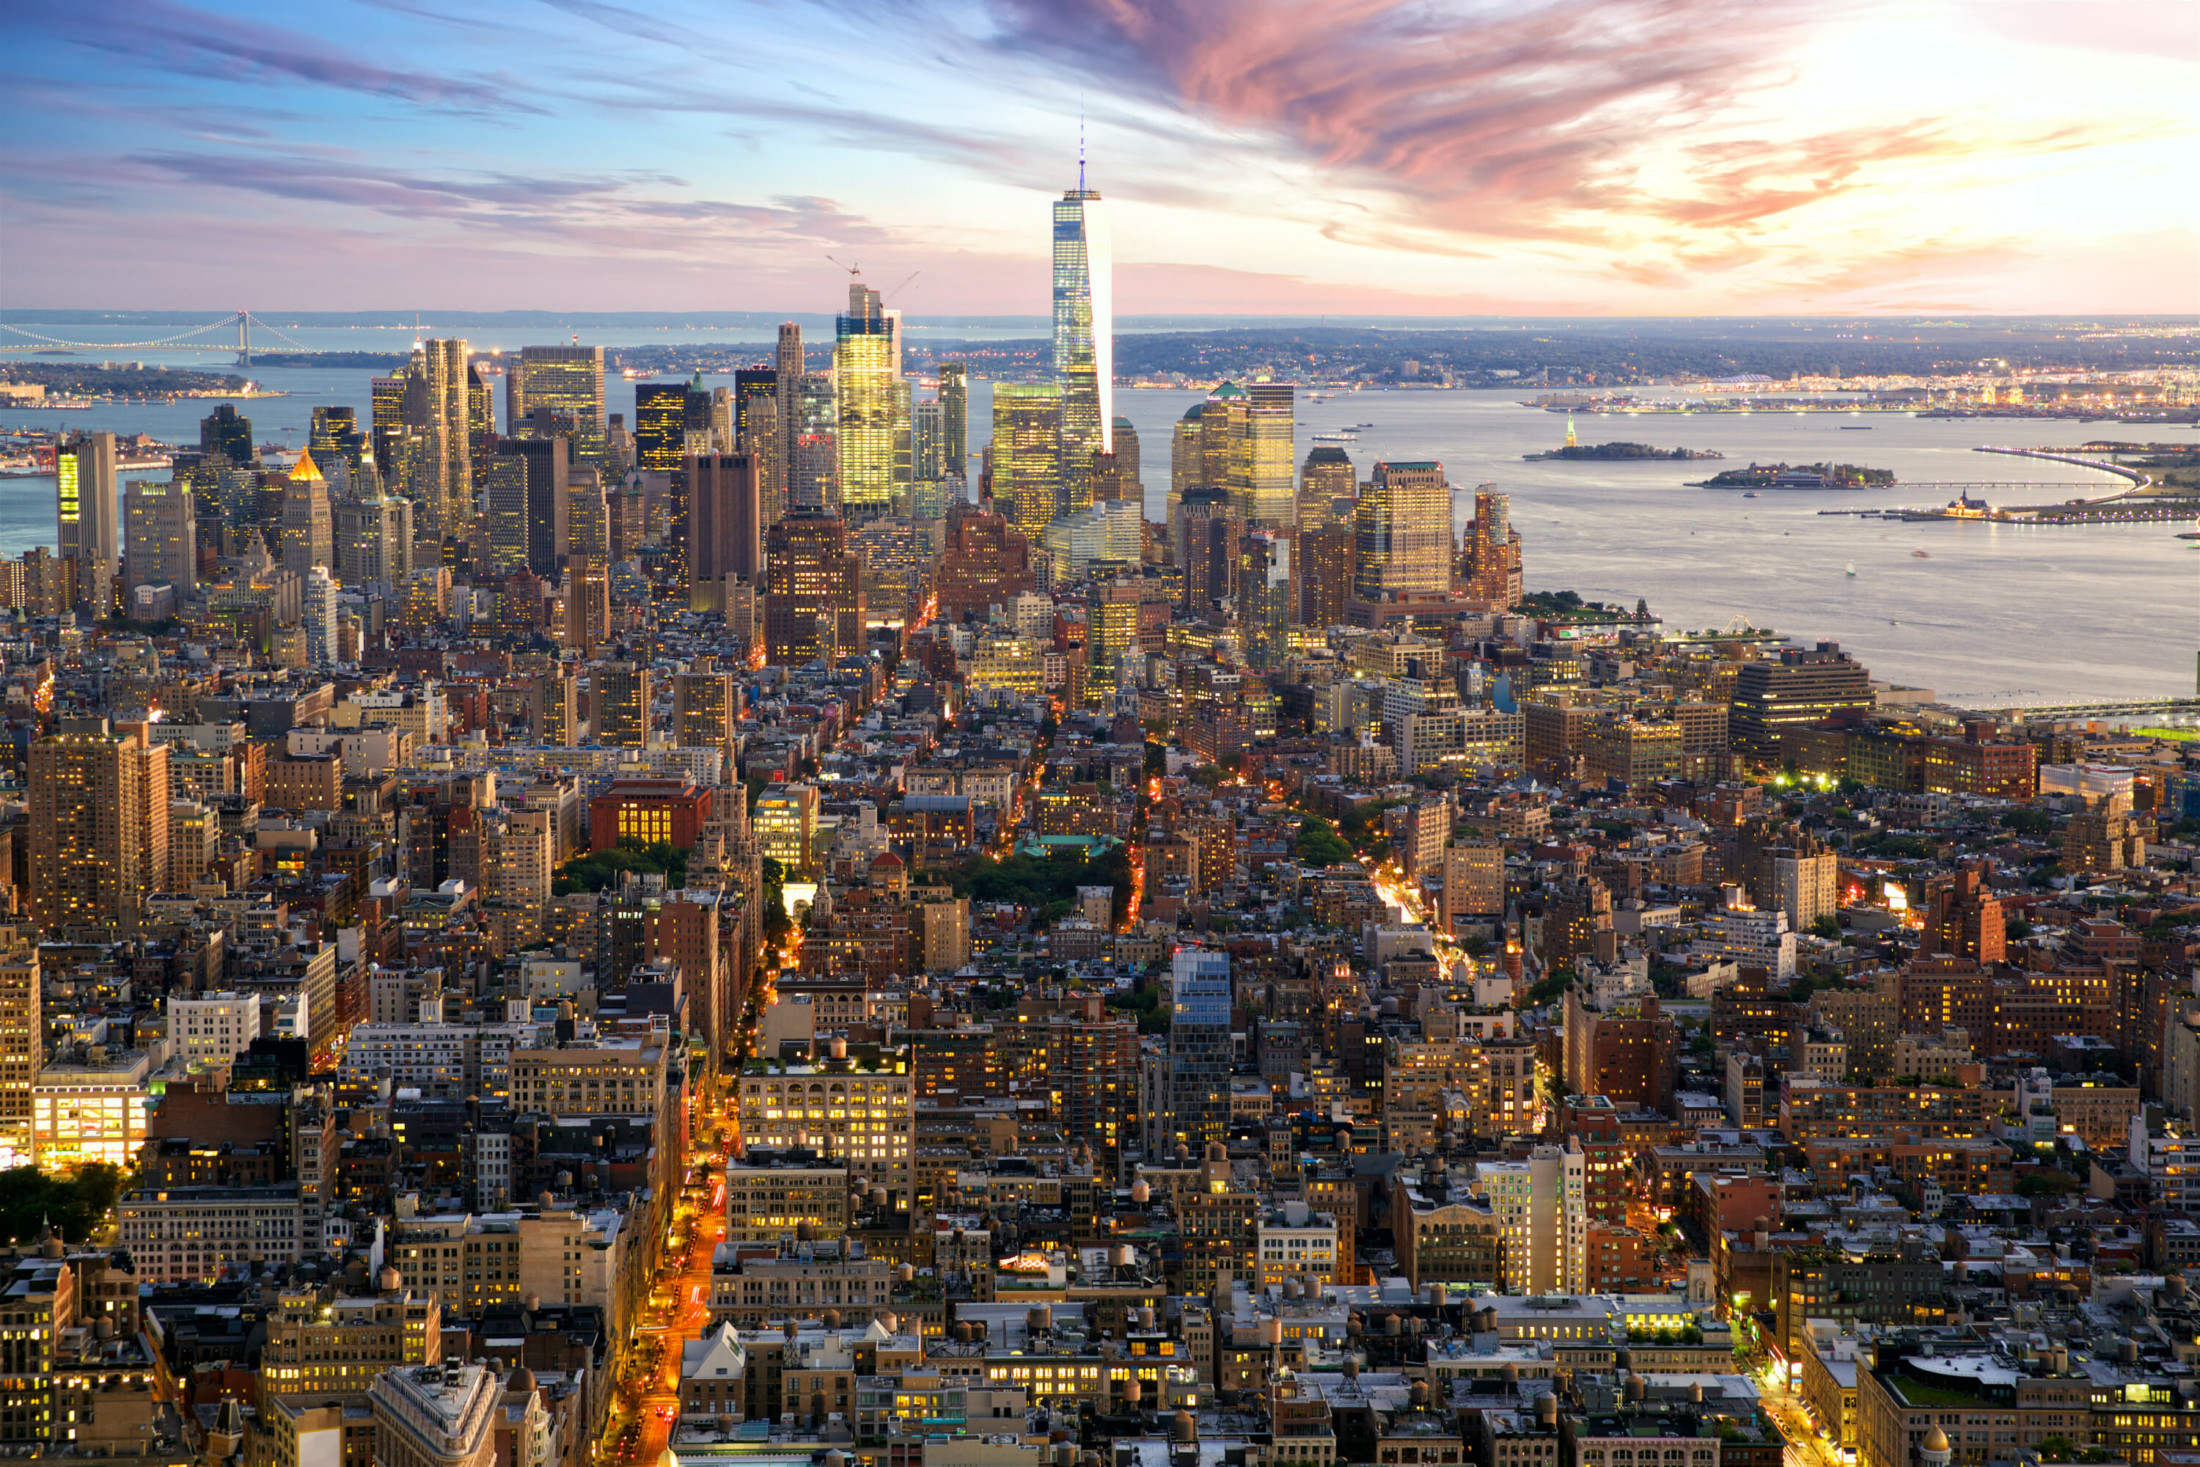 New York City, New York | Advice for Property Managers in Primary Markets | Buildium